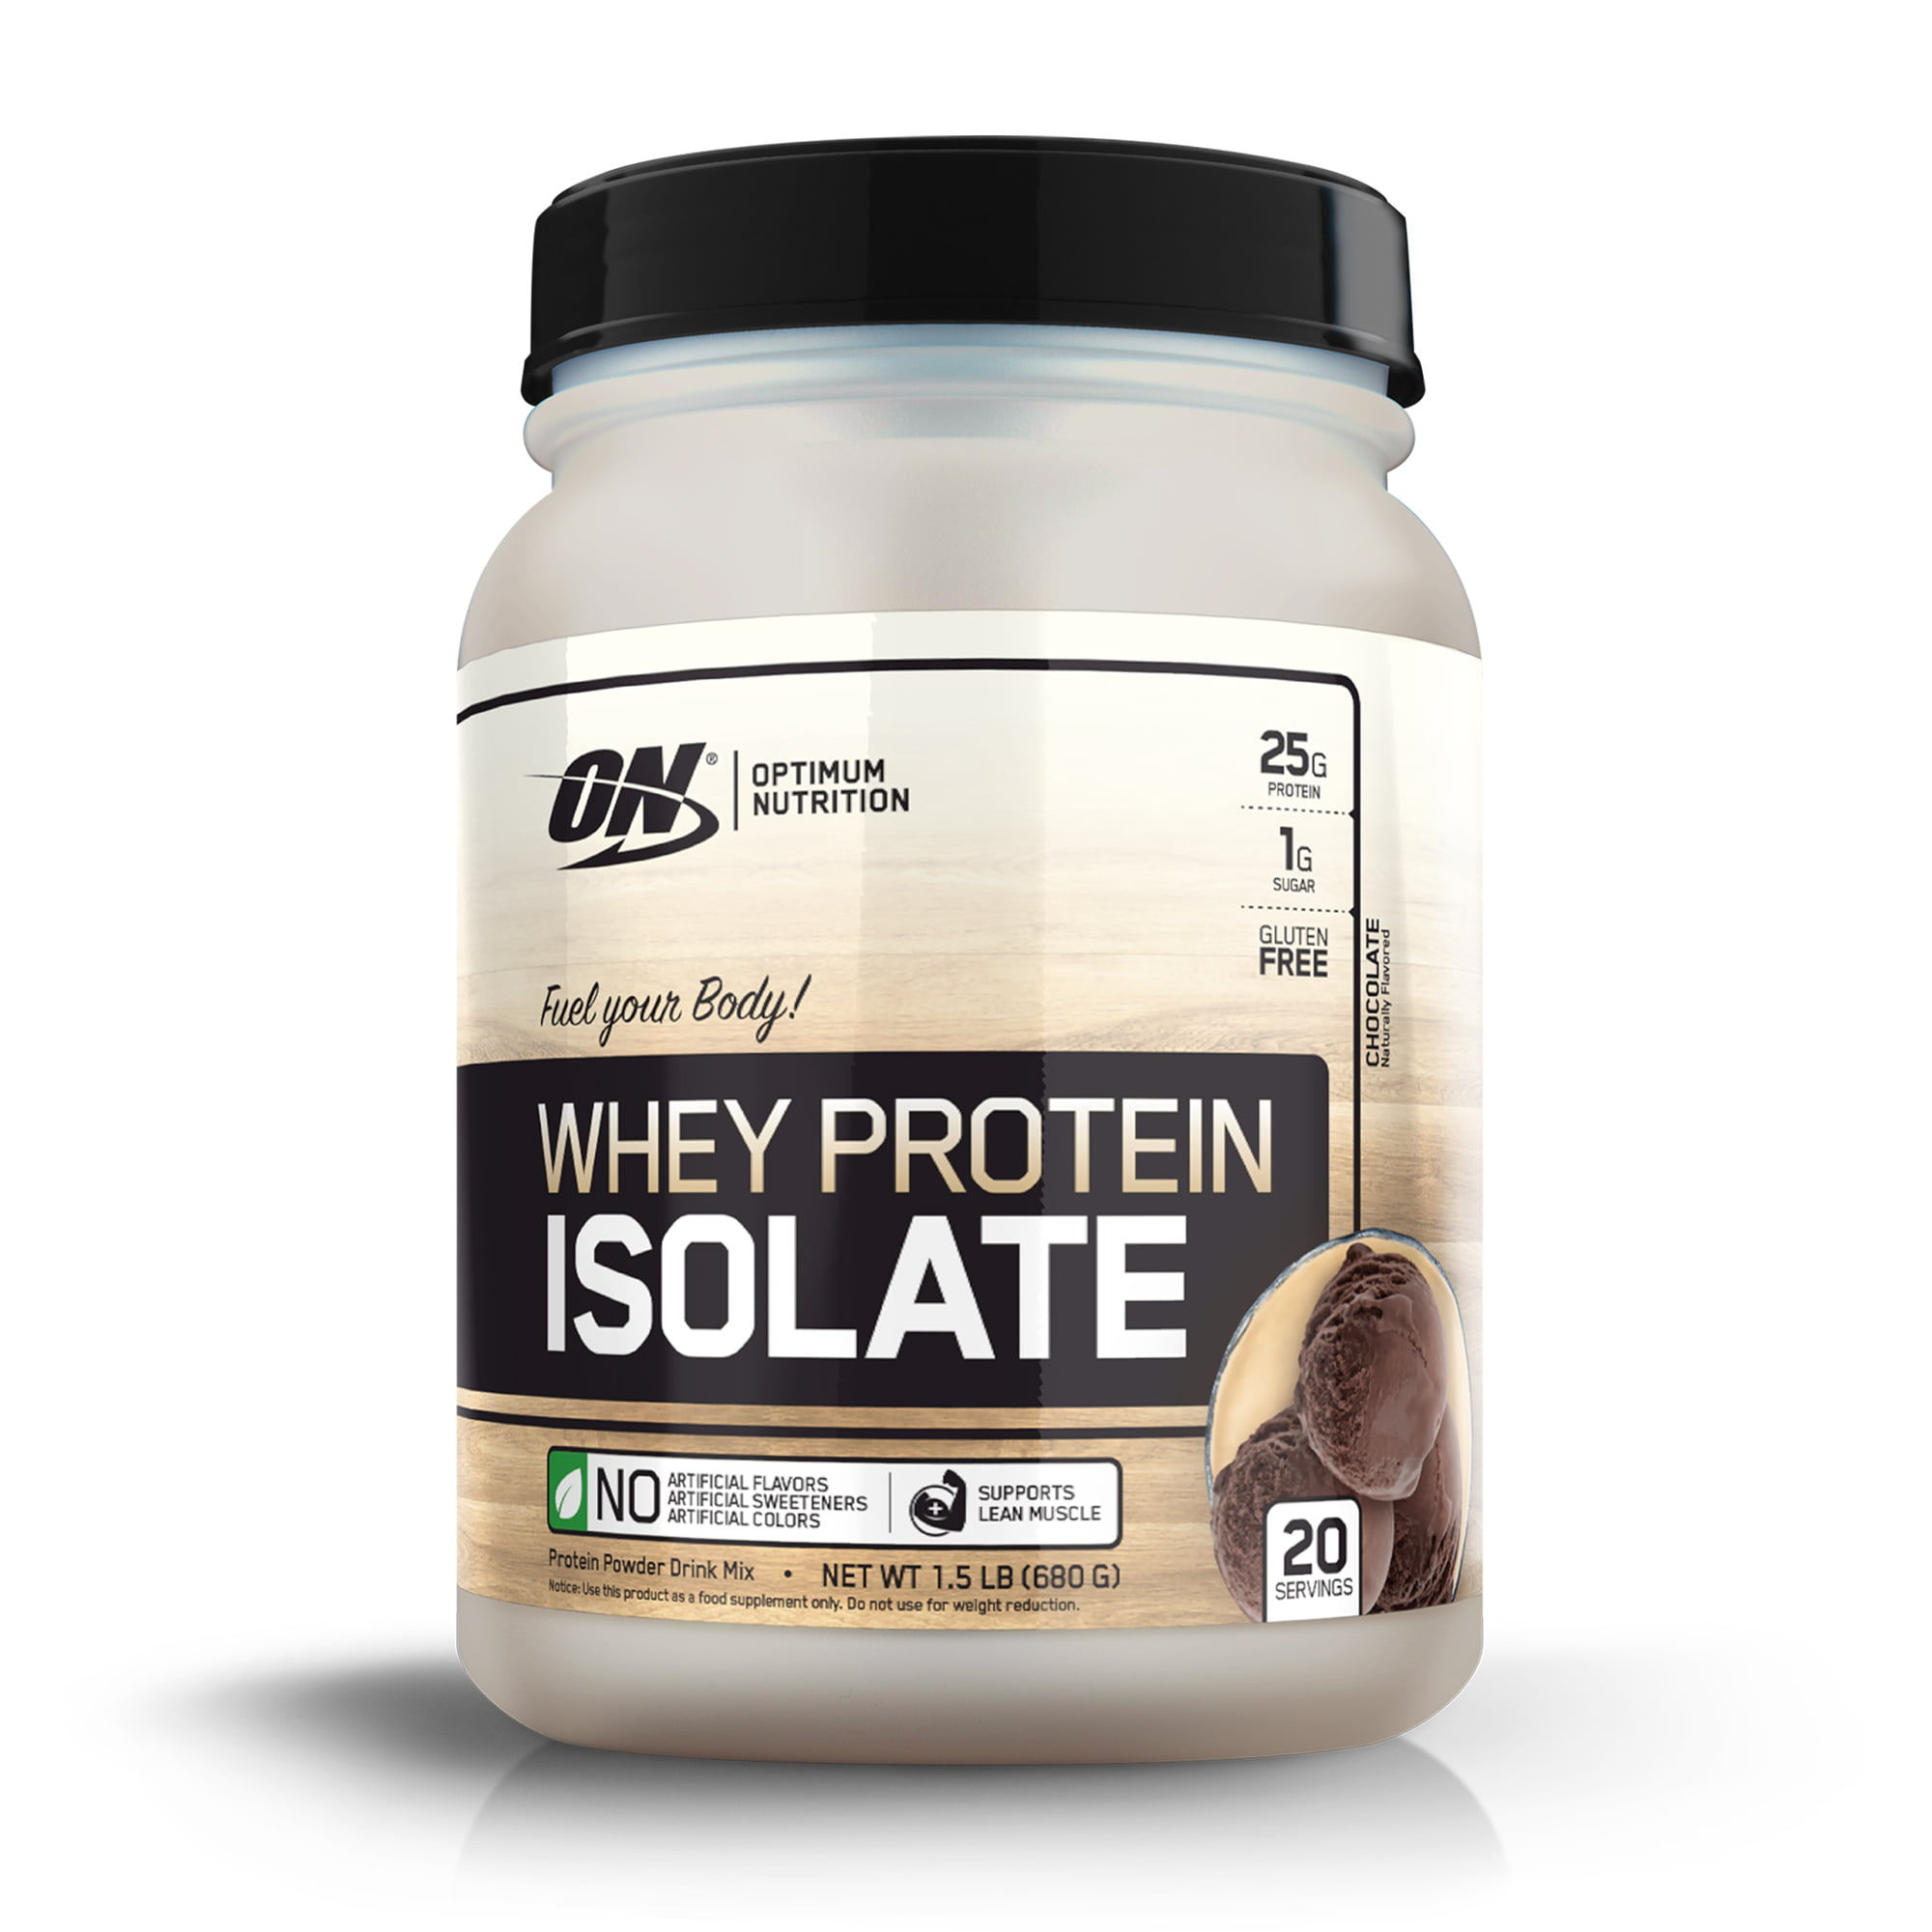 Optimum Nutrition Whey Protein Isolate, Chocolate, 25g Protein, 20 Servings